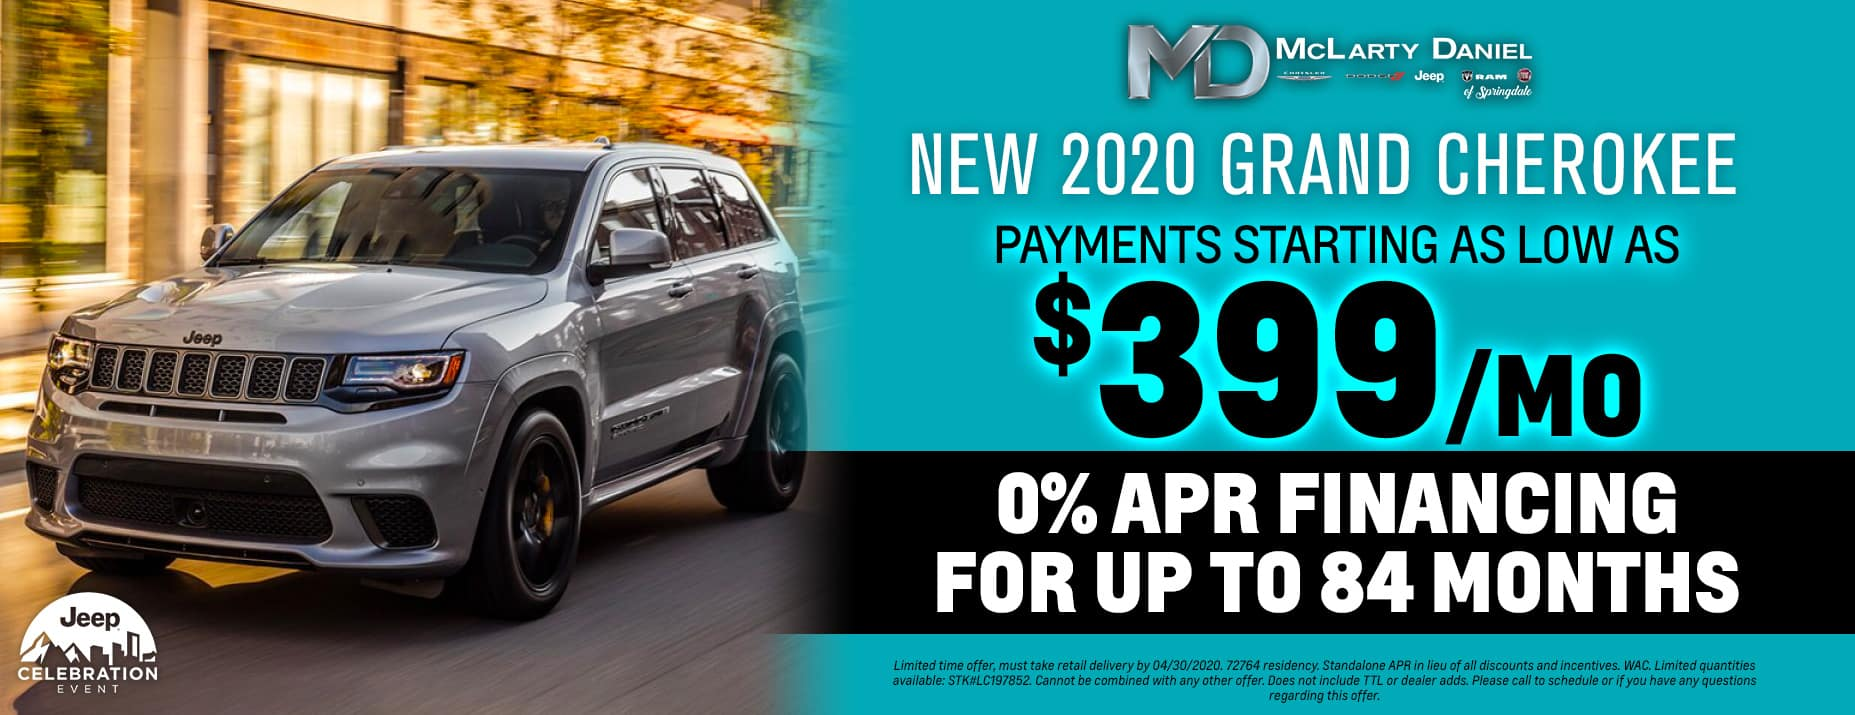 Get 0% for 84 months on 2020 Jeep Grand Cherokee - payments starting as low as $399/mo!